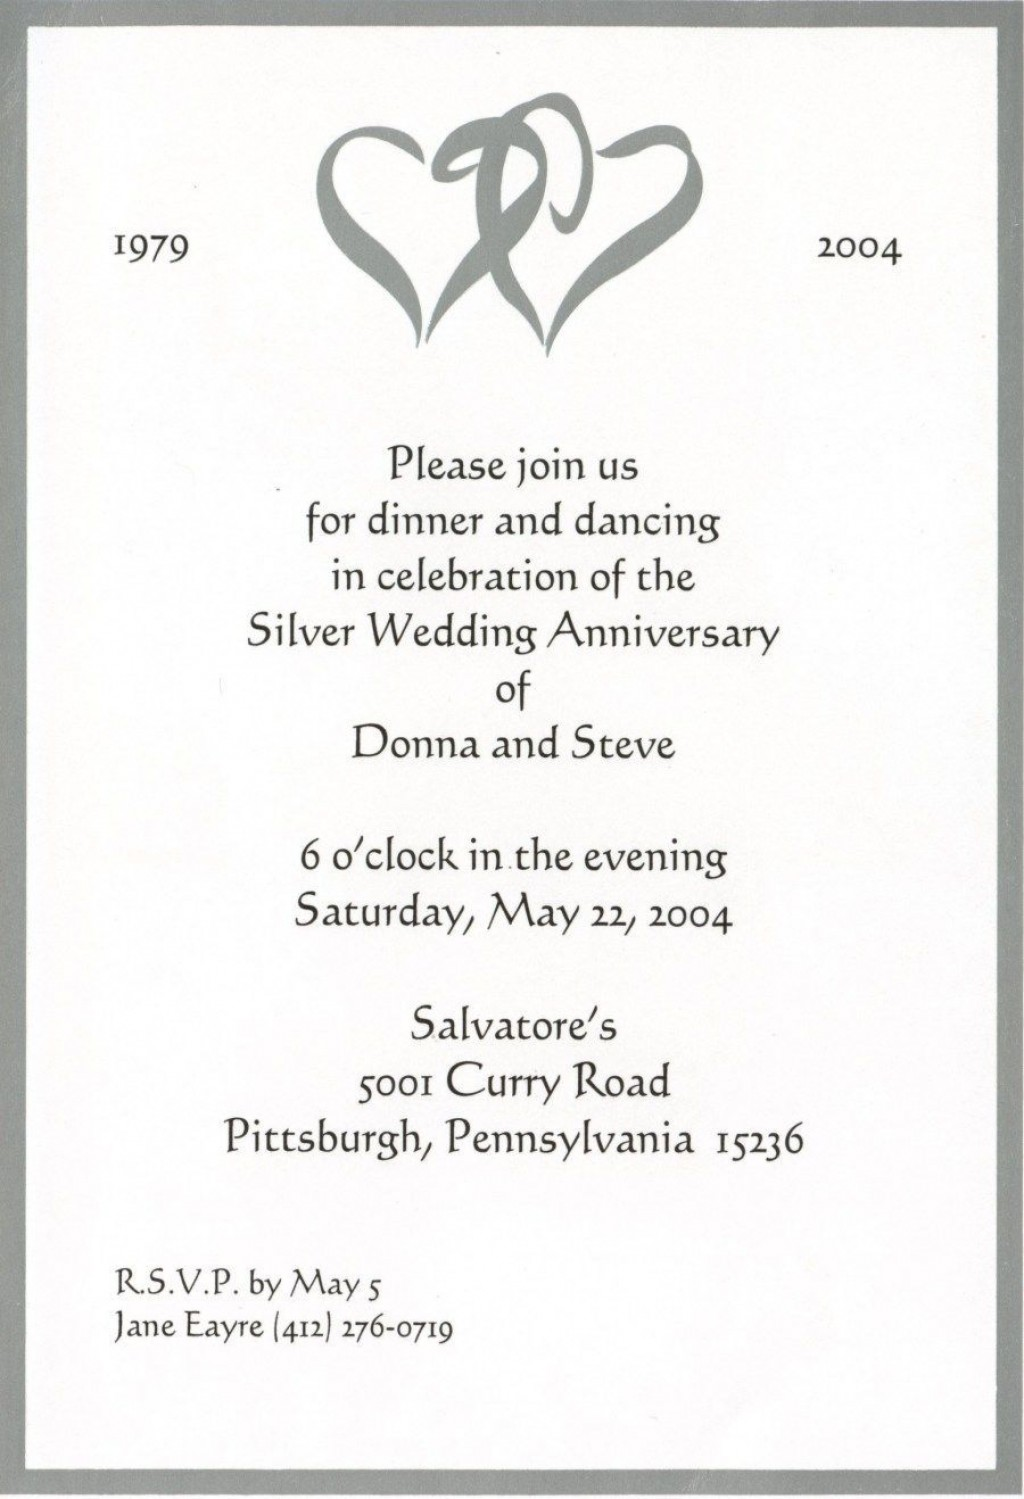 005 Fearsome 50th Anniversary Invitation Wording Sample Concept  Samples Wedding CardLarge